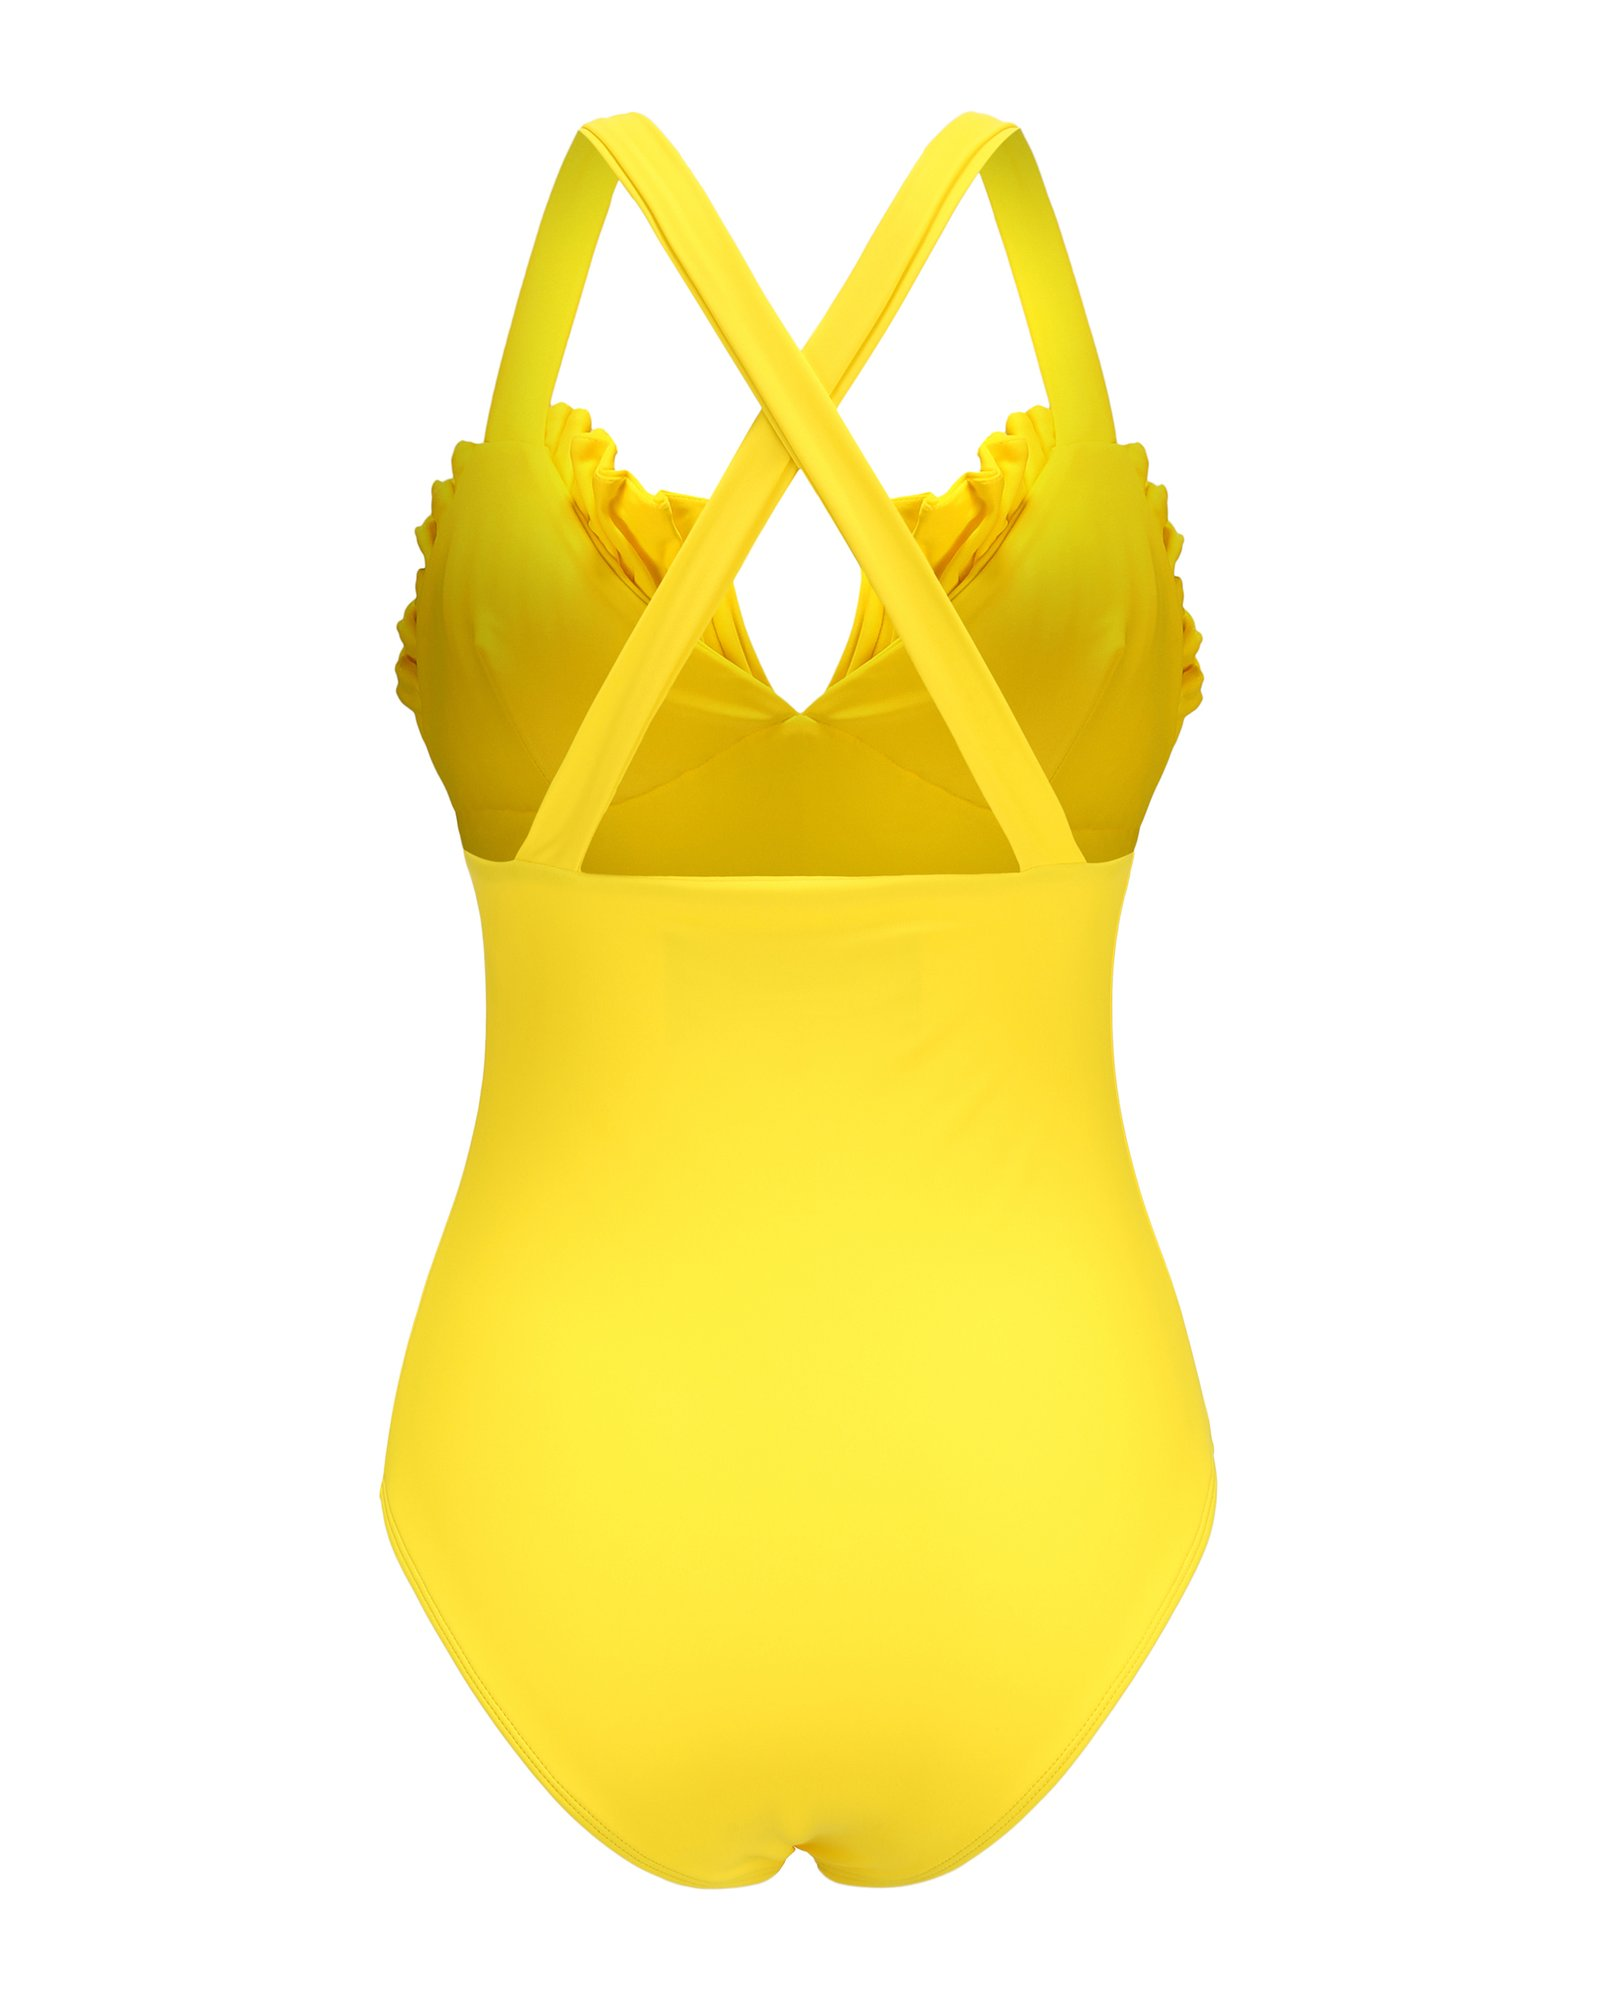 Shell Swimsuit in Aquaholic Yellow by PAPER London on curated-crowd.com